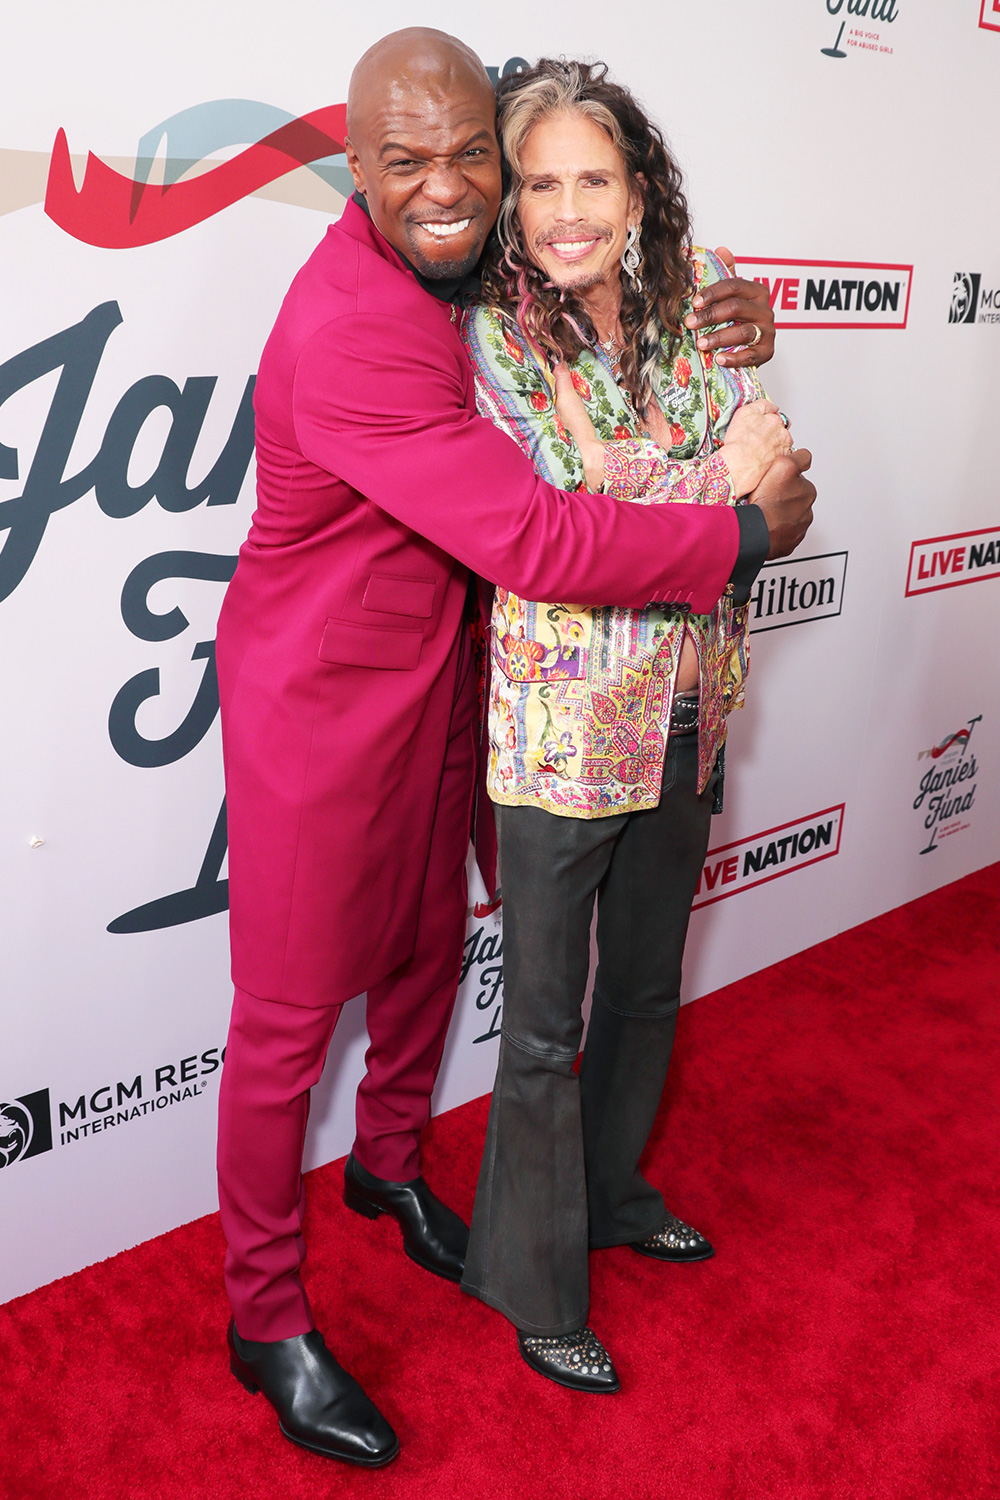 Terry Crews and Steven Tyler arrive at Steven Tyler's Third Annual Grammy Awards Viewing Party to benefit Janies Fund presented by Live Nation at Raleigh Studios on January 26, 2020 in Los Angeles, California